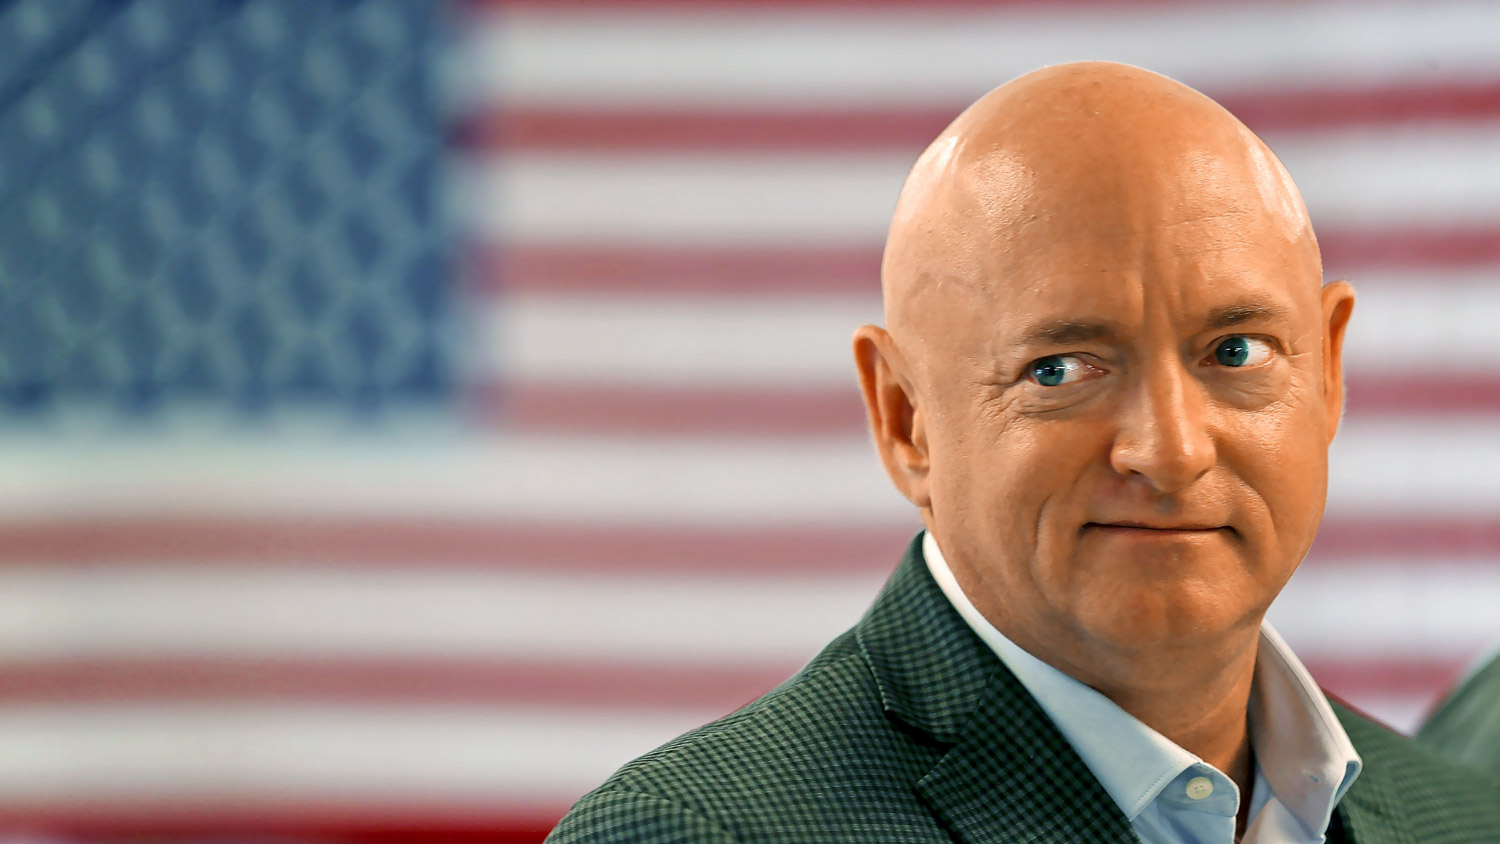 former-astronaut-mark-kelly-announces-campaign-for-us-senate